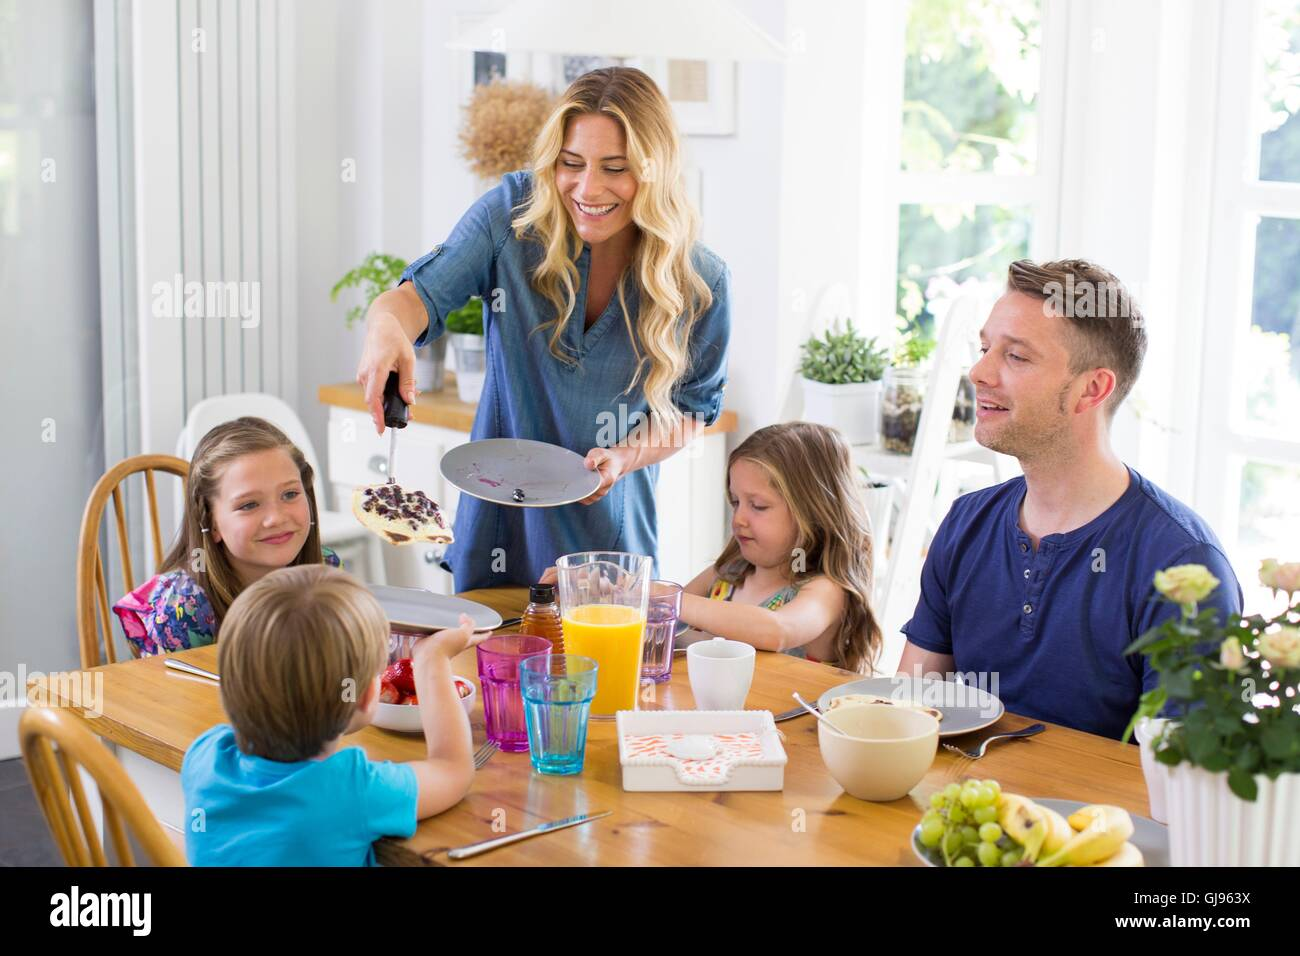 PROPERTY RELEASED. MODEL RELEASED. Family at dining table having a meal. - Stock Image